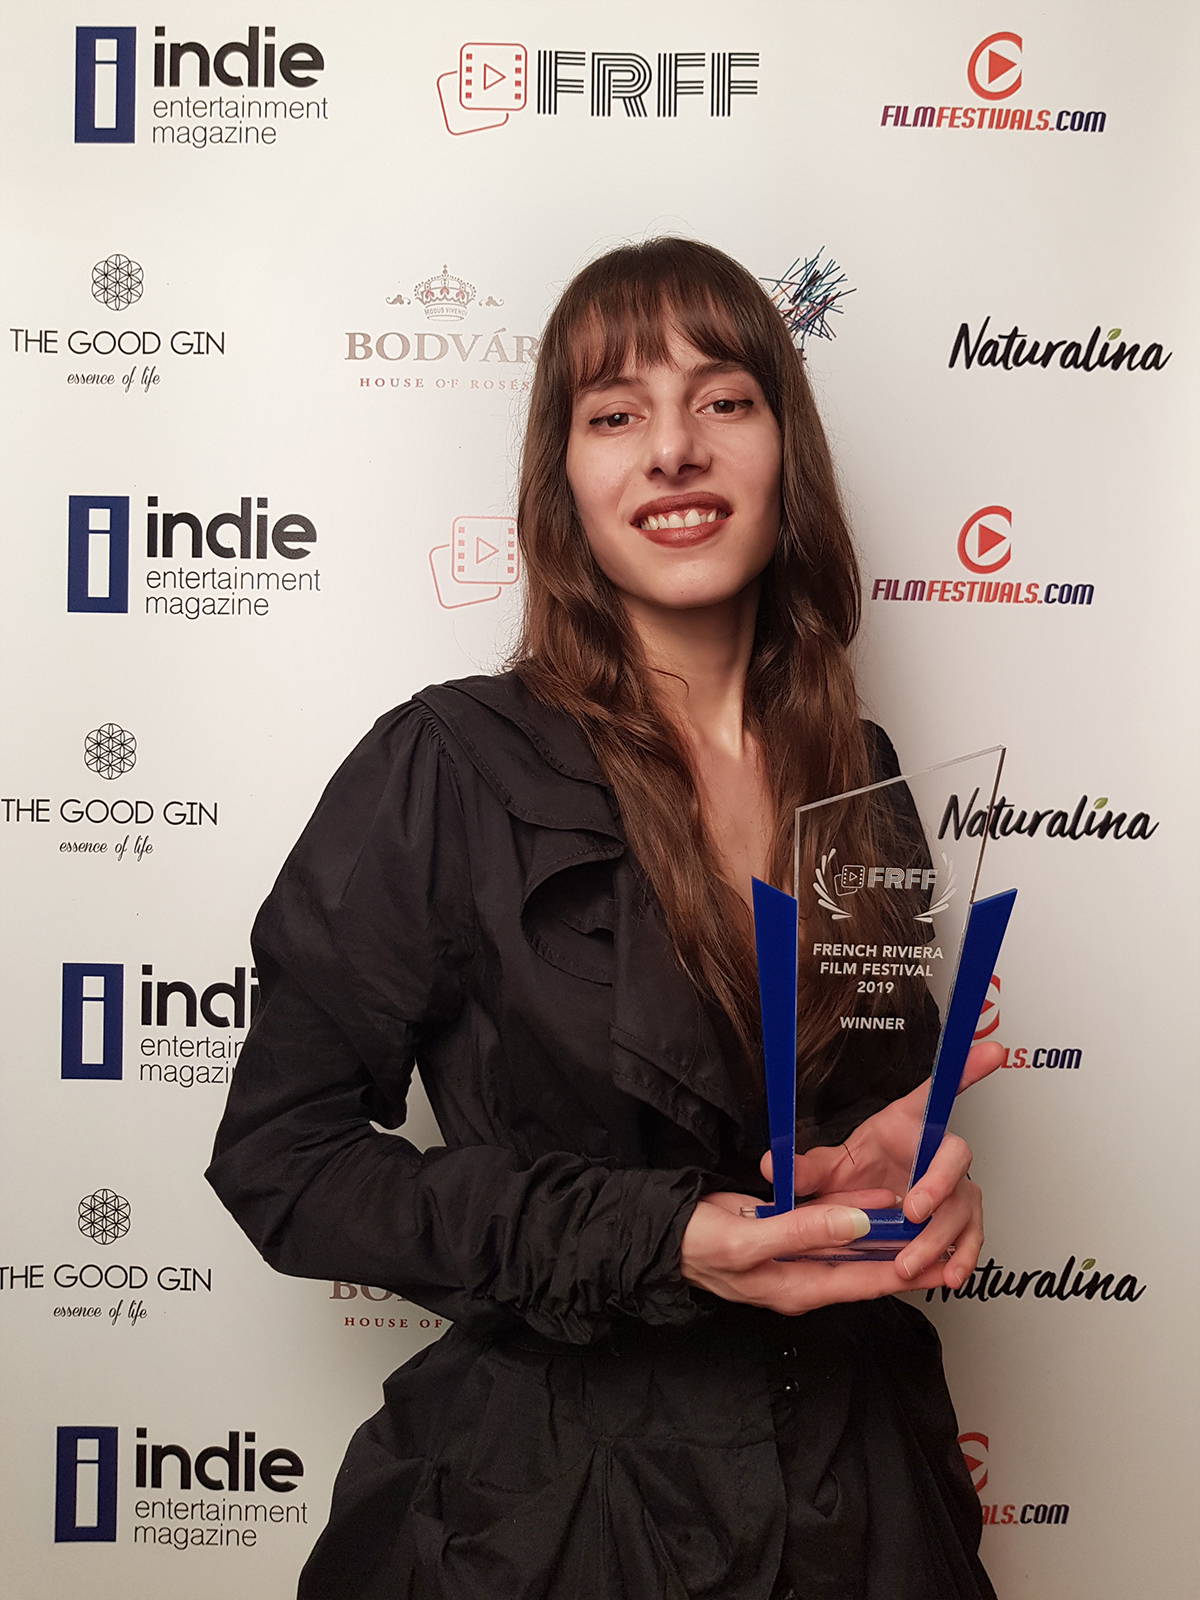 Olivia Hadjiioannou (Oh.) at the Frenchh Riviera Film Festival in Cannes - Best Music Video Award